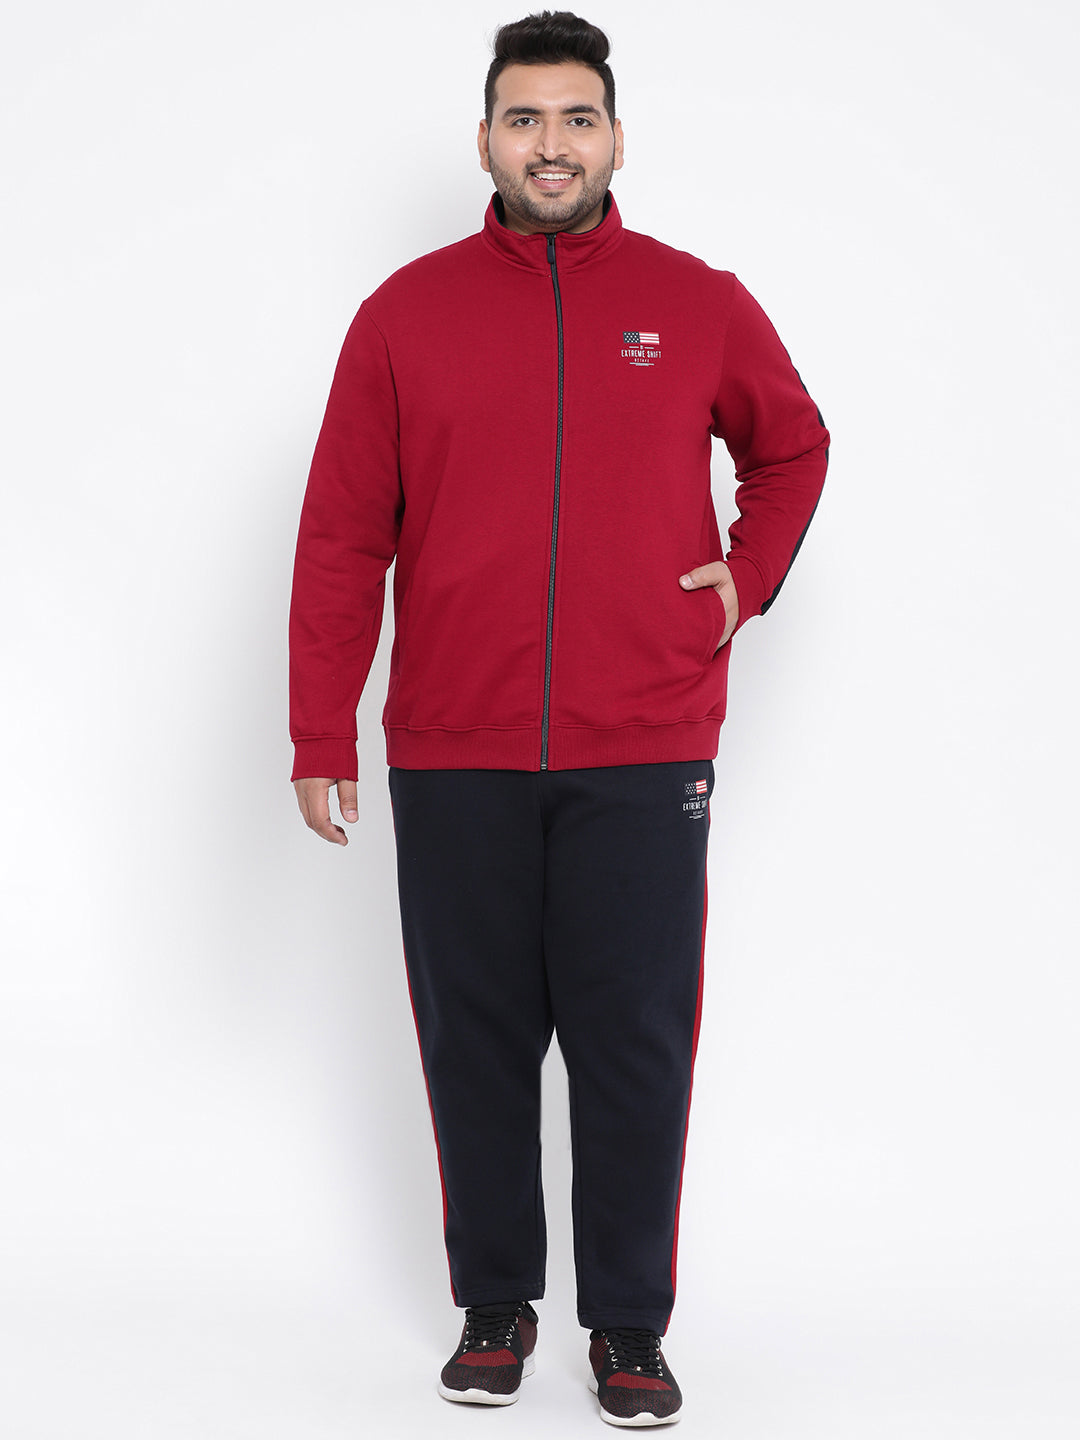 Octave Apparels Red-navy Jogging Suit for Men